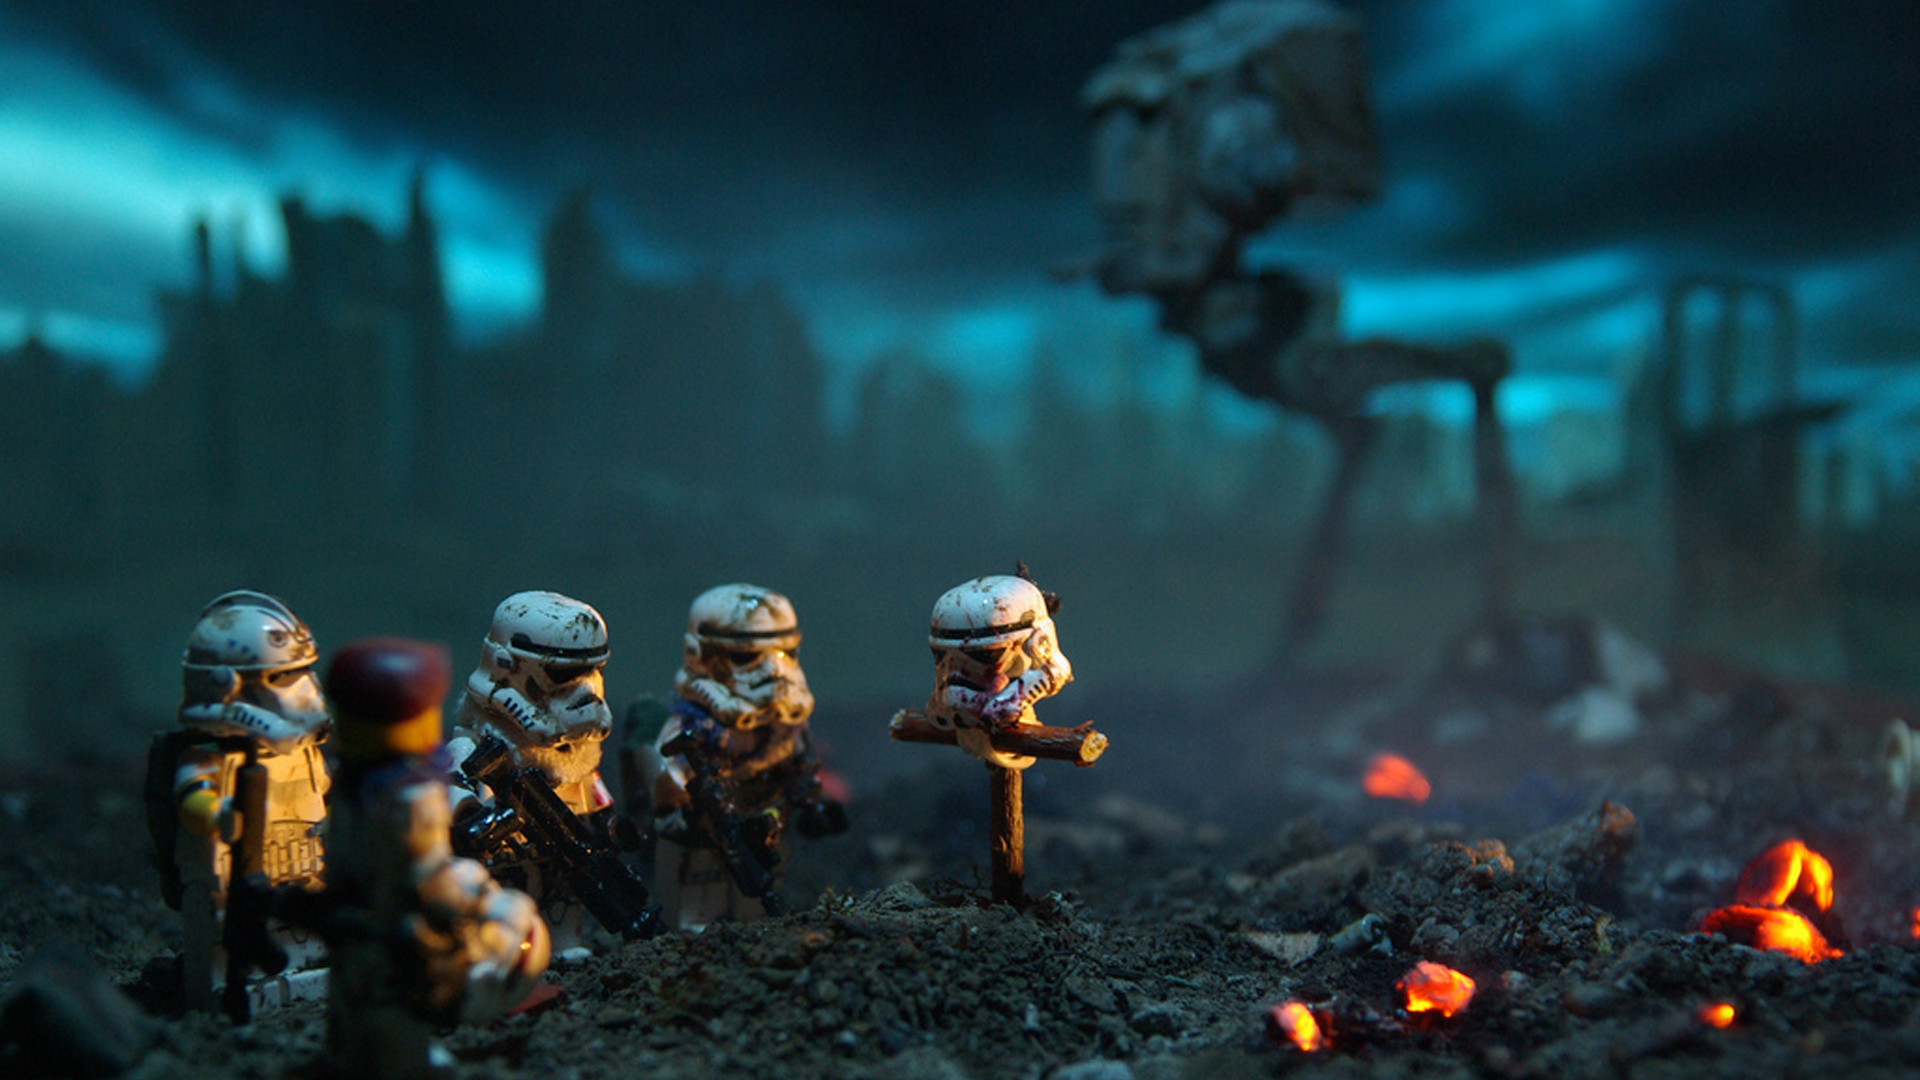 13 Amusing Photos Of LEGO Star Wars Characters